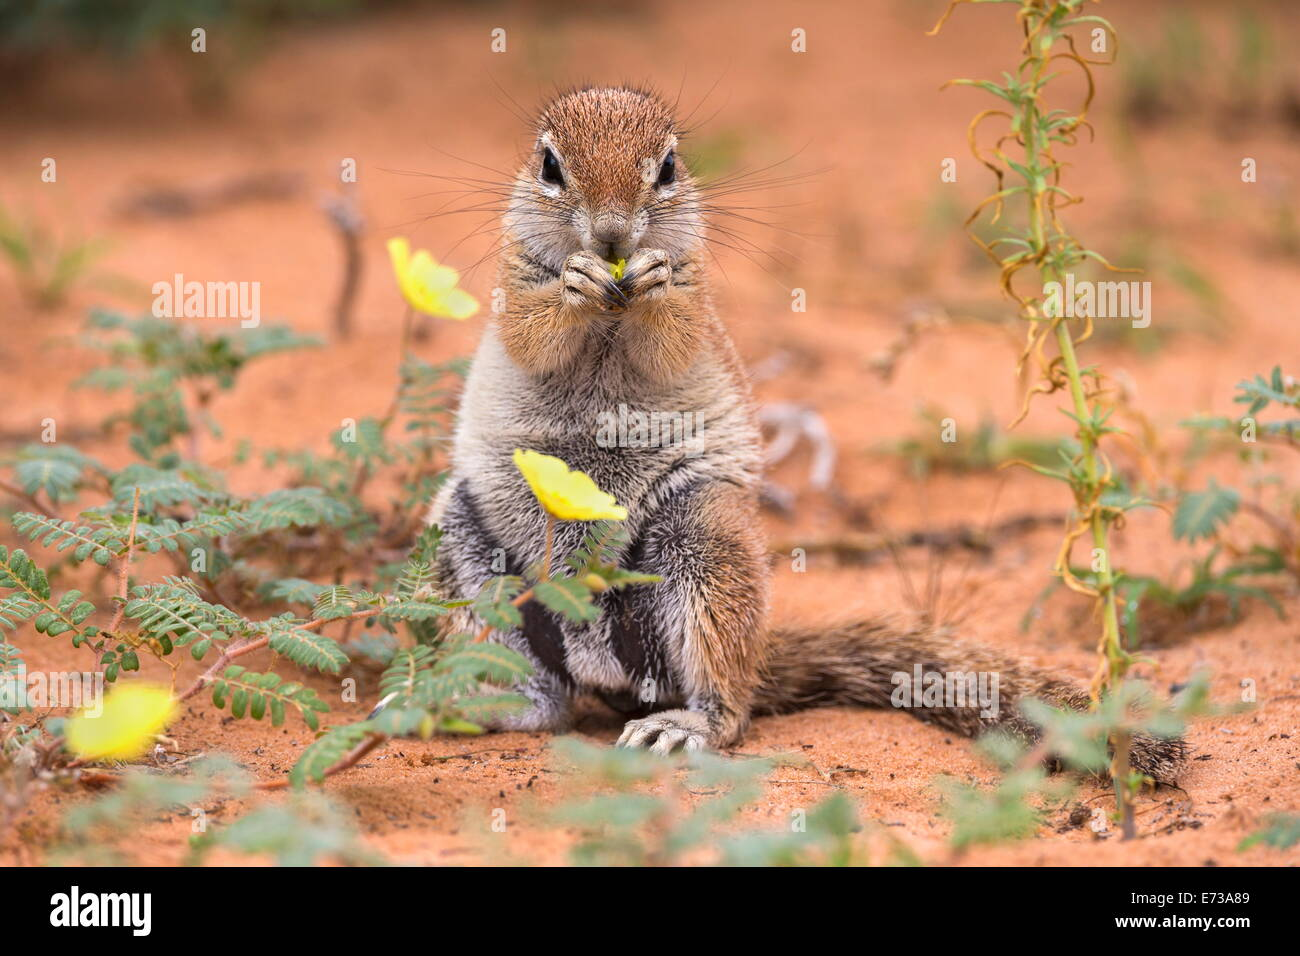 Ground squirrel eating devil's thorn flowers (Tribulus zeyheri), Kgalagadi Transfrontier Park, Northern Cape, - Stock Image